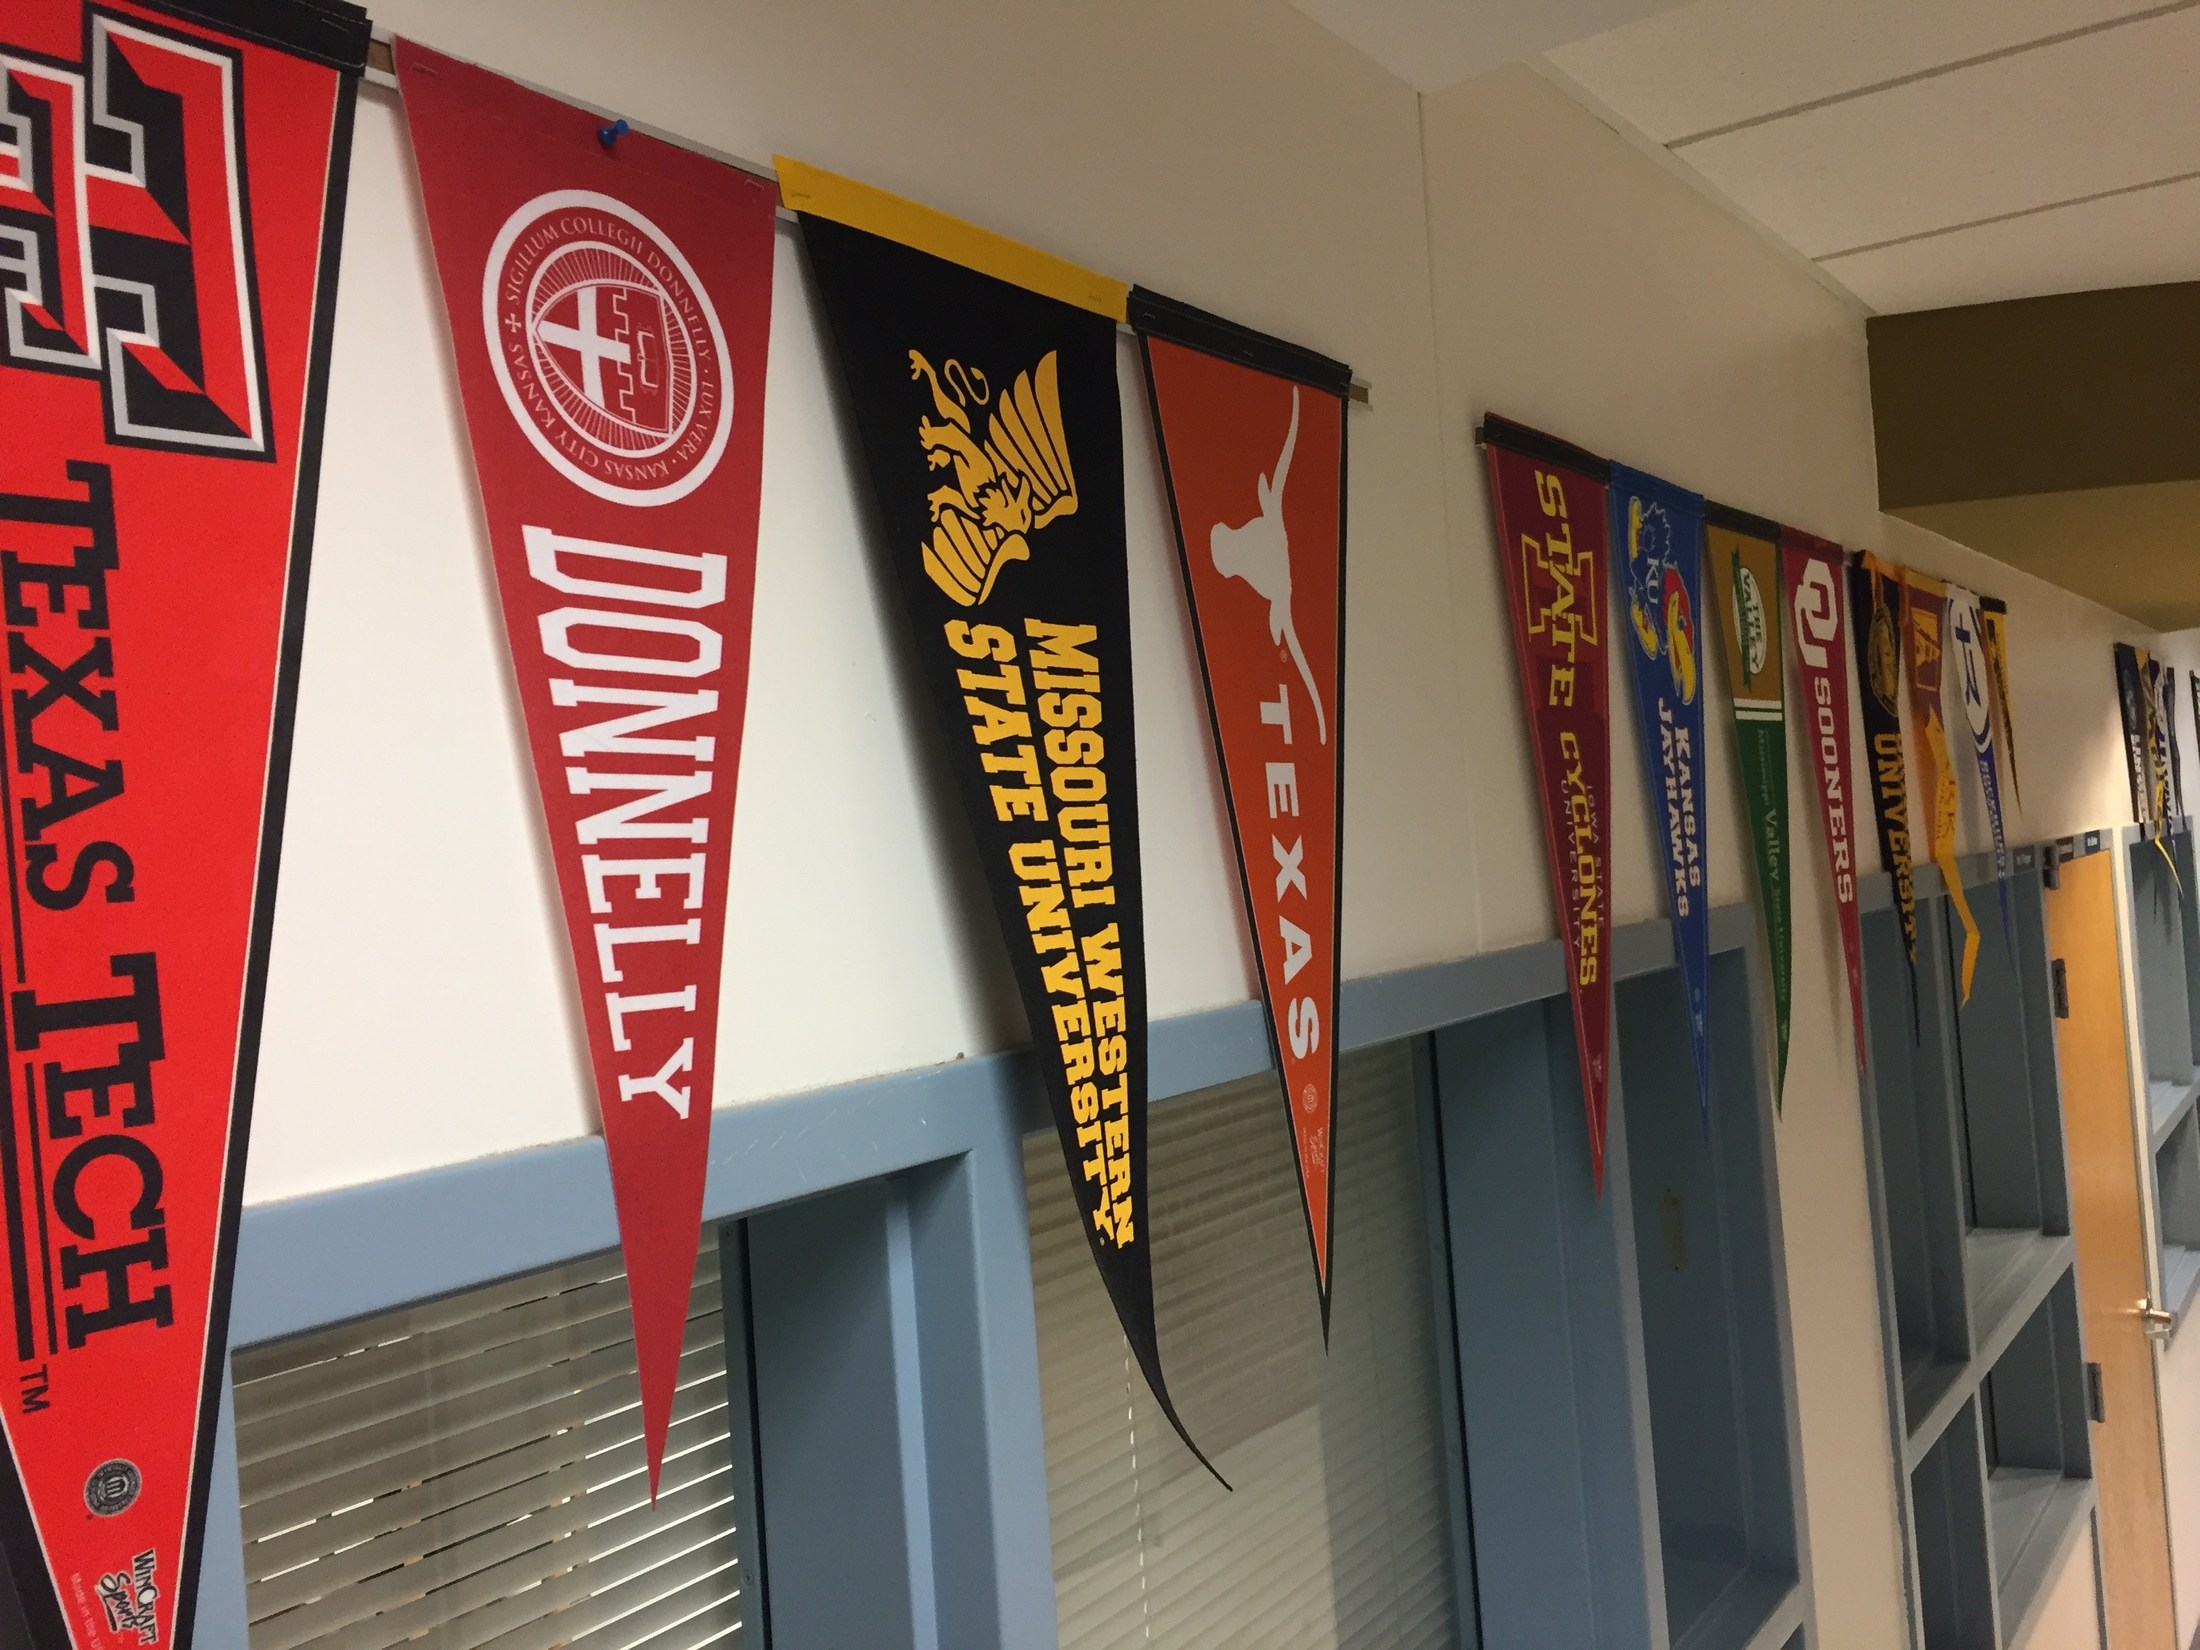 College Banners hanging in hallway